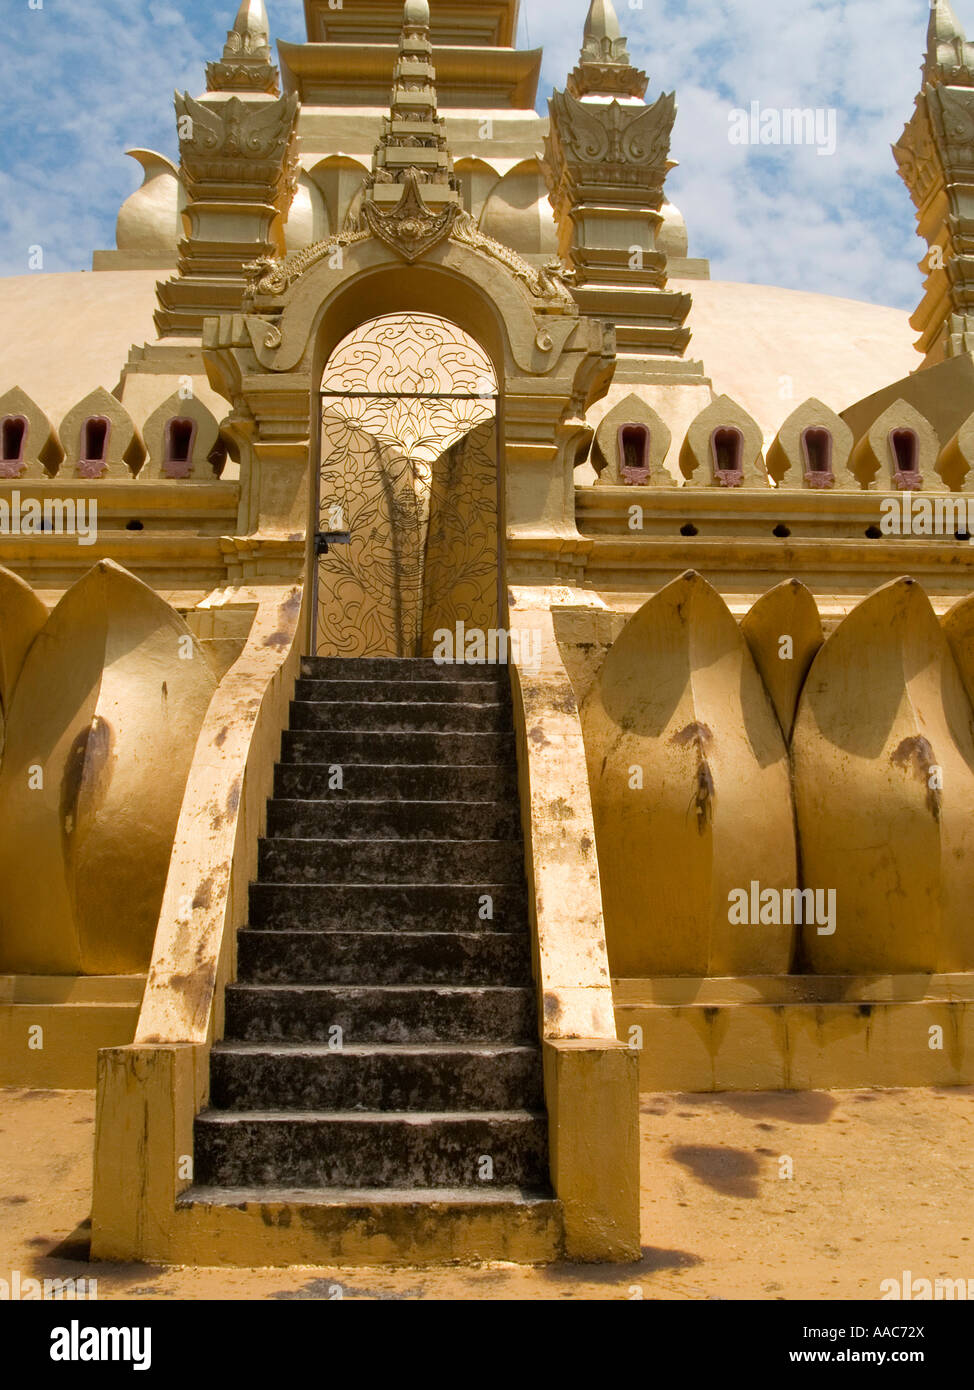 stairway to heaven stairs leading to top of golden That Luang Temple most revered place in Laos - Stock Image